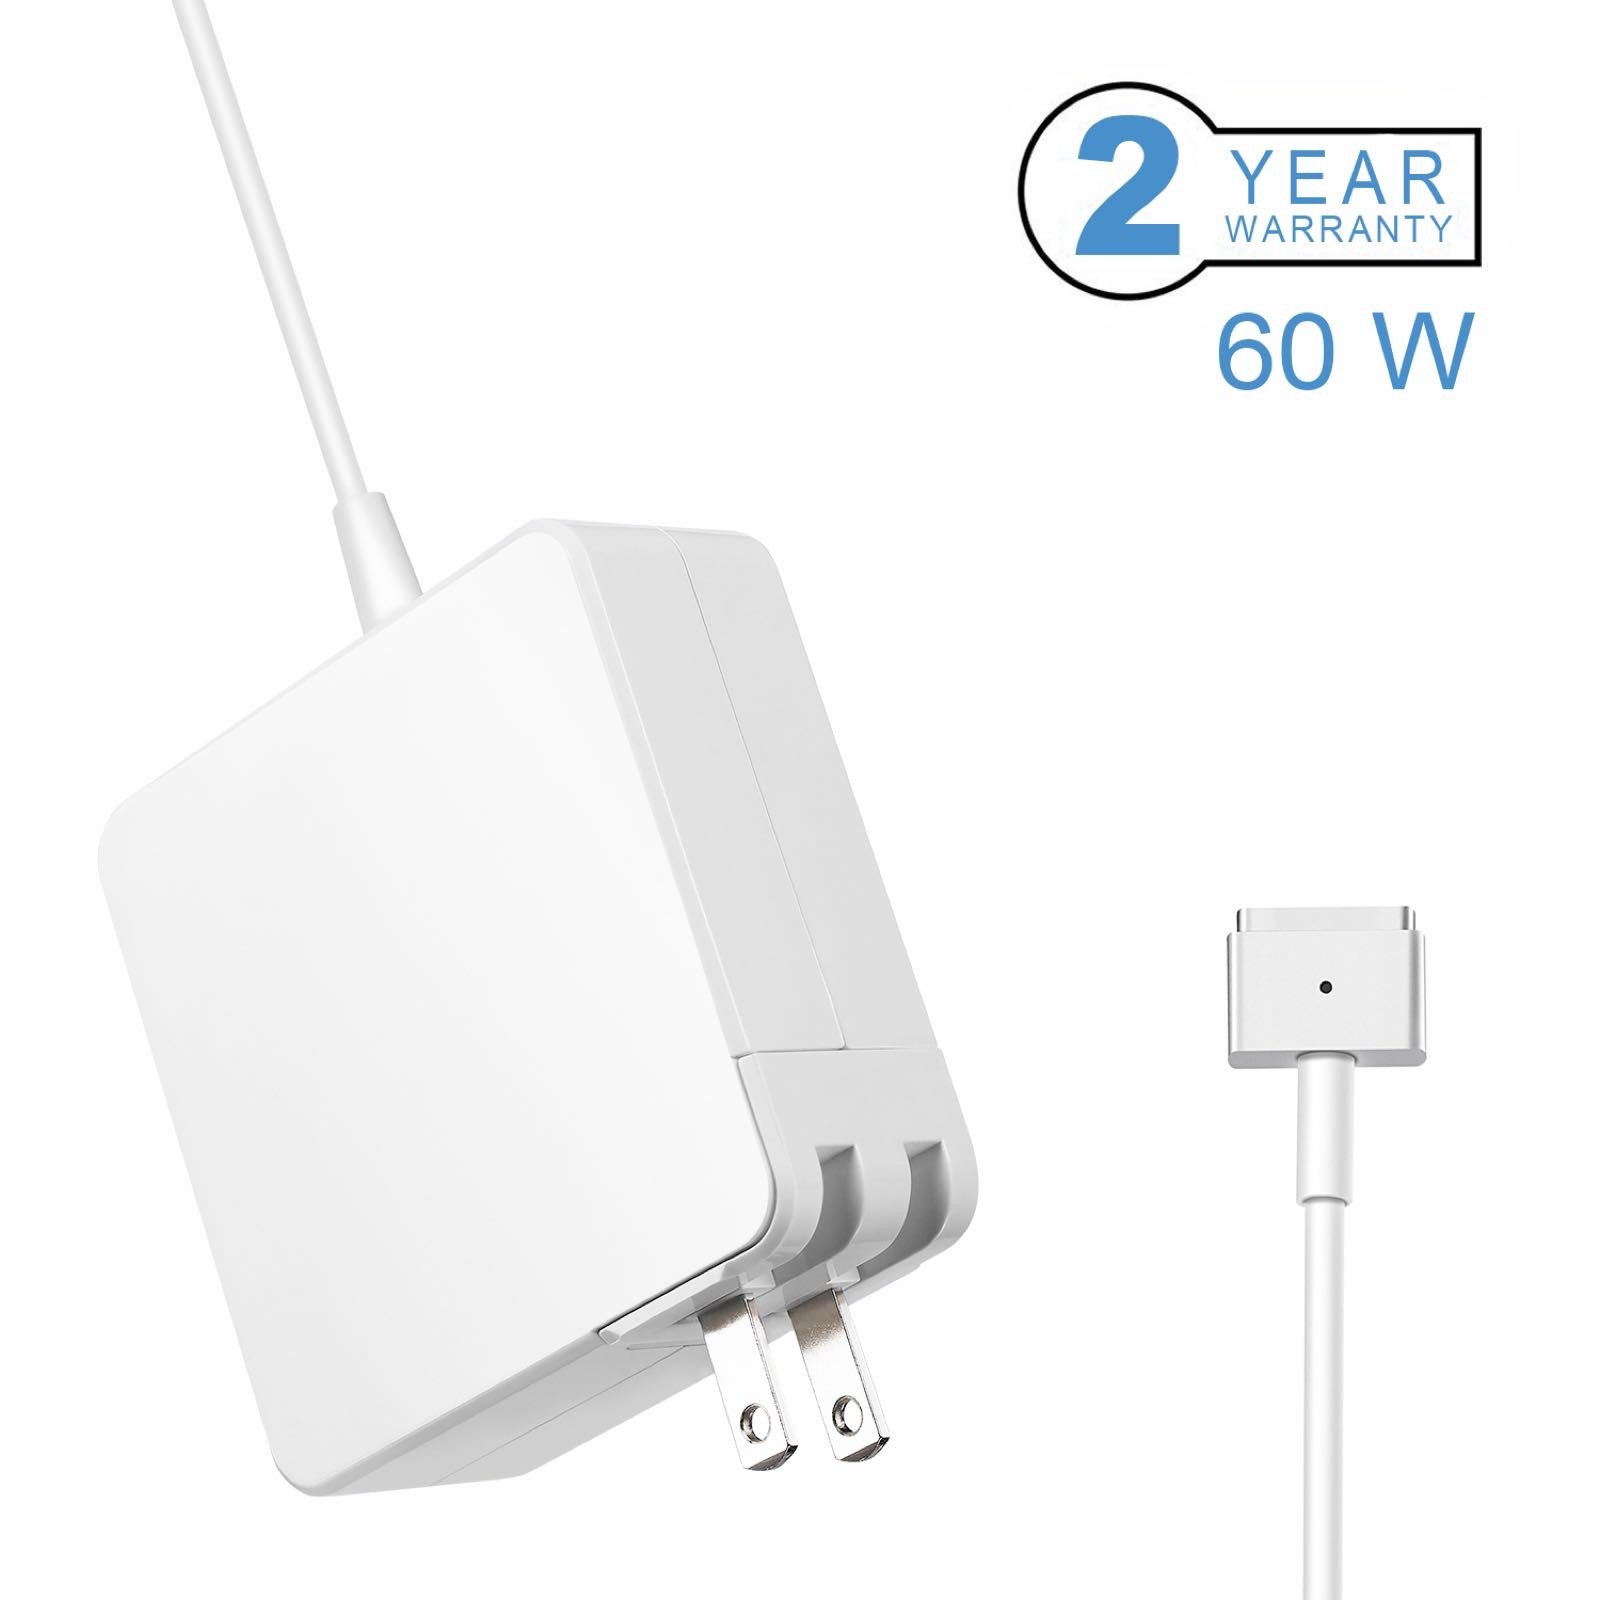 Macbook Pro Charger, Replacement 60W Power Adapter Magsafe 2 (T) Style Connector for Apple Macbook Pro with 13-inch Retina display - After Late 2012 by Lighteck